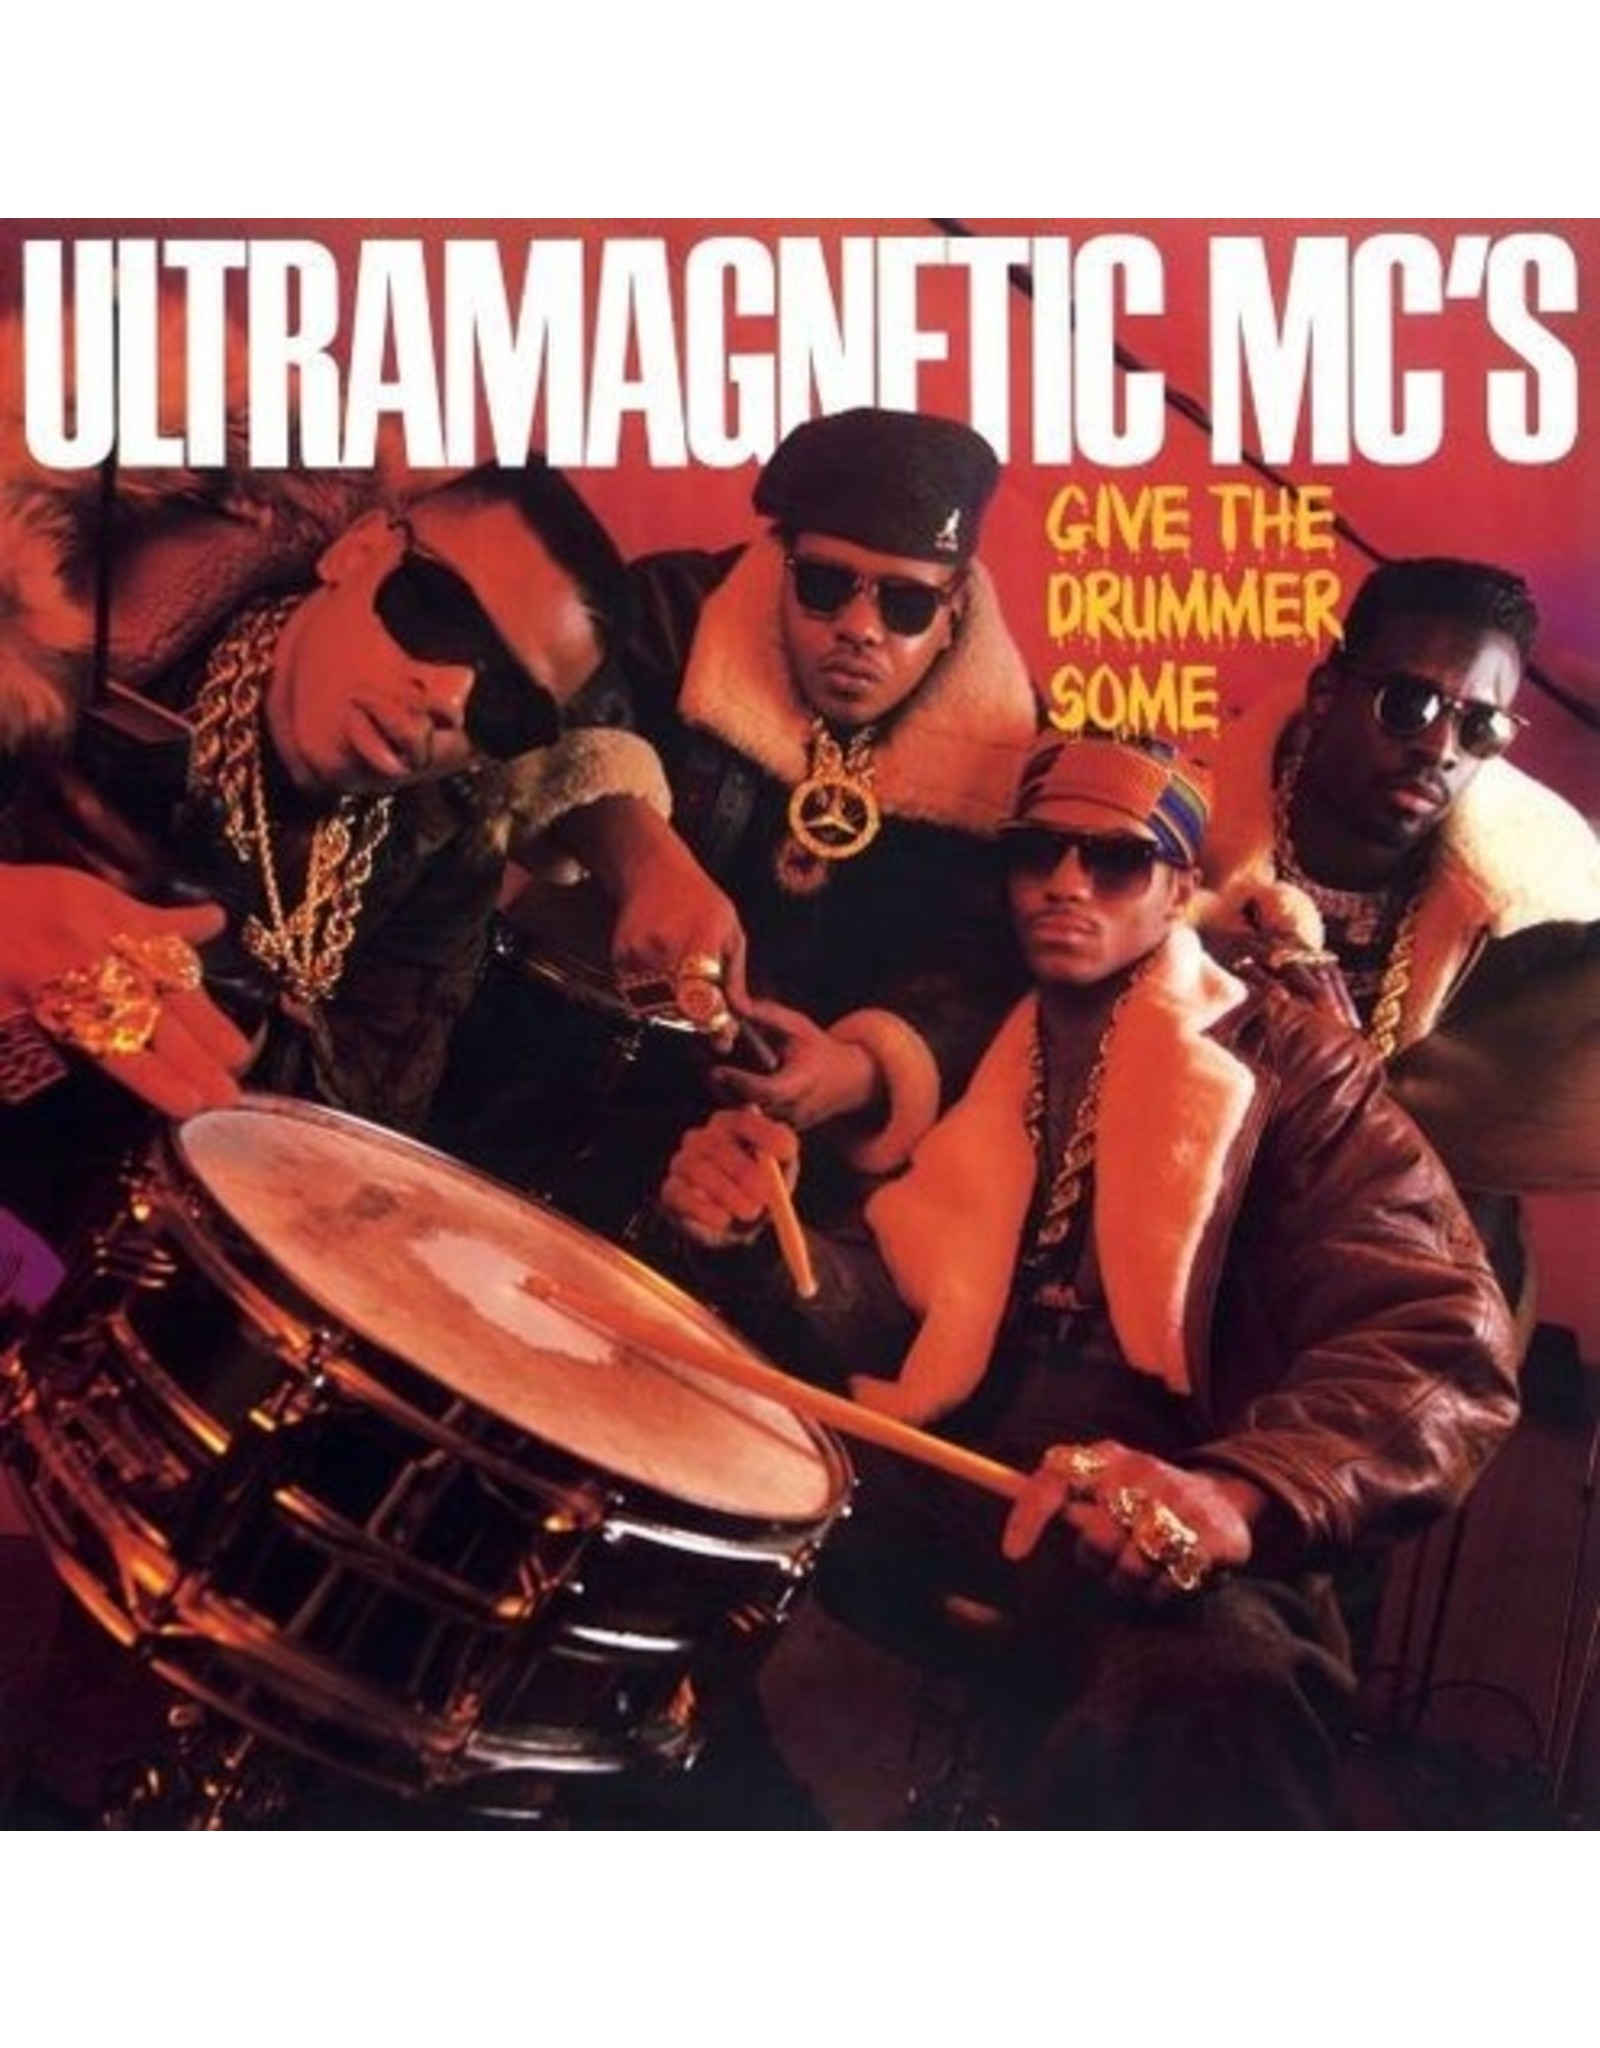 New Vinyl Ultramagnetic MC's - Give The Drummer Some 7""